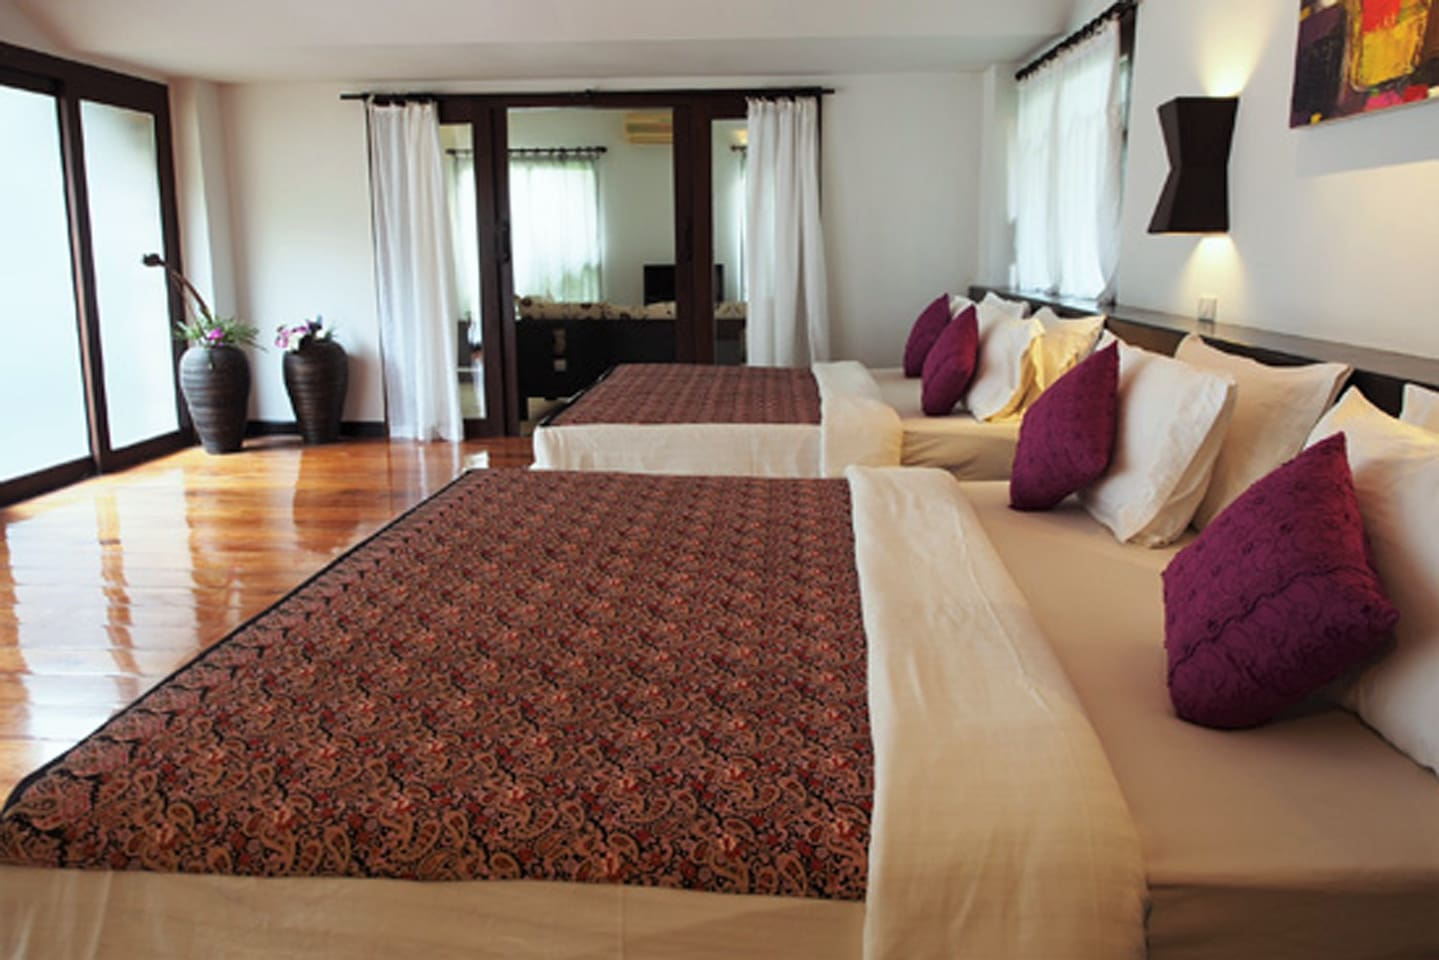 1 Large bedrooms suite for 4 pax